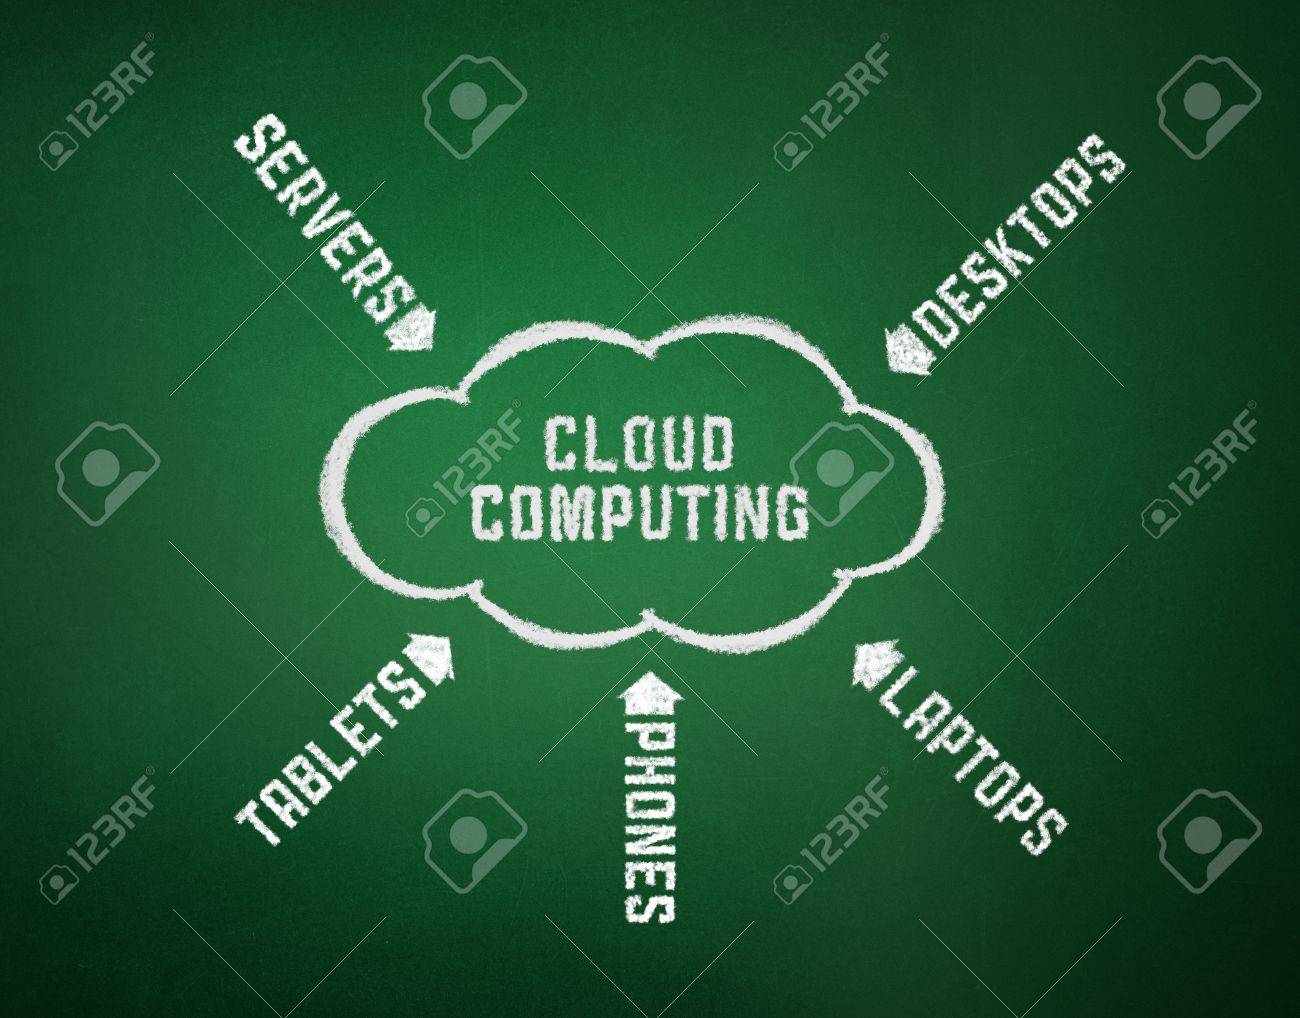 Conceptual picture on cloud computing theme. Drawing on textured background. Stock Photo - 11913909